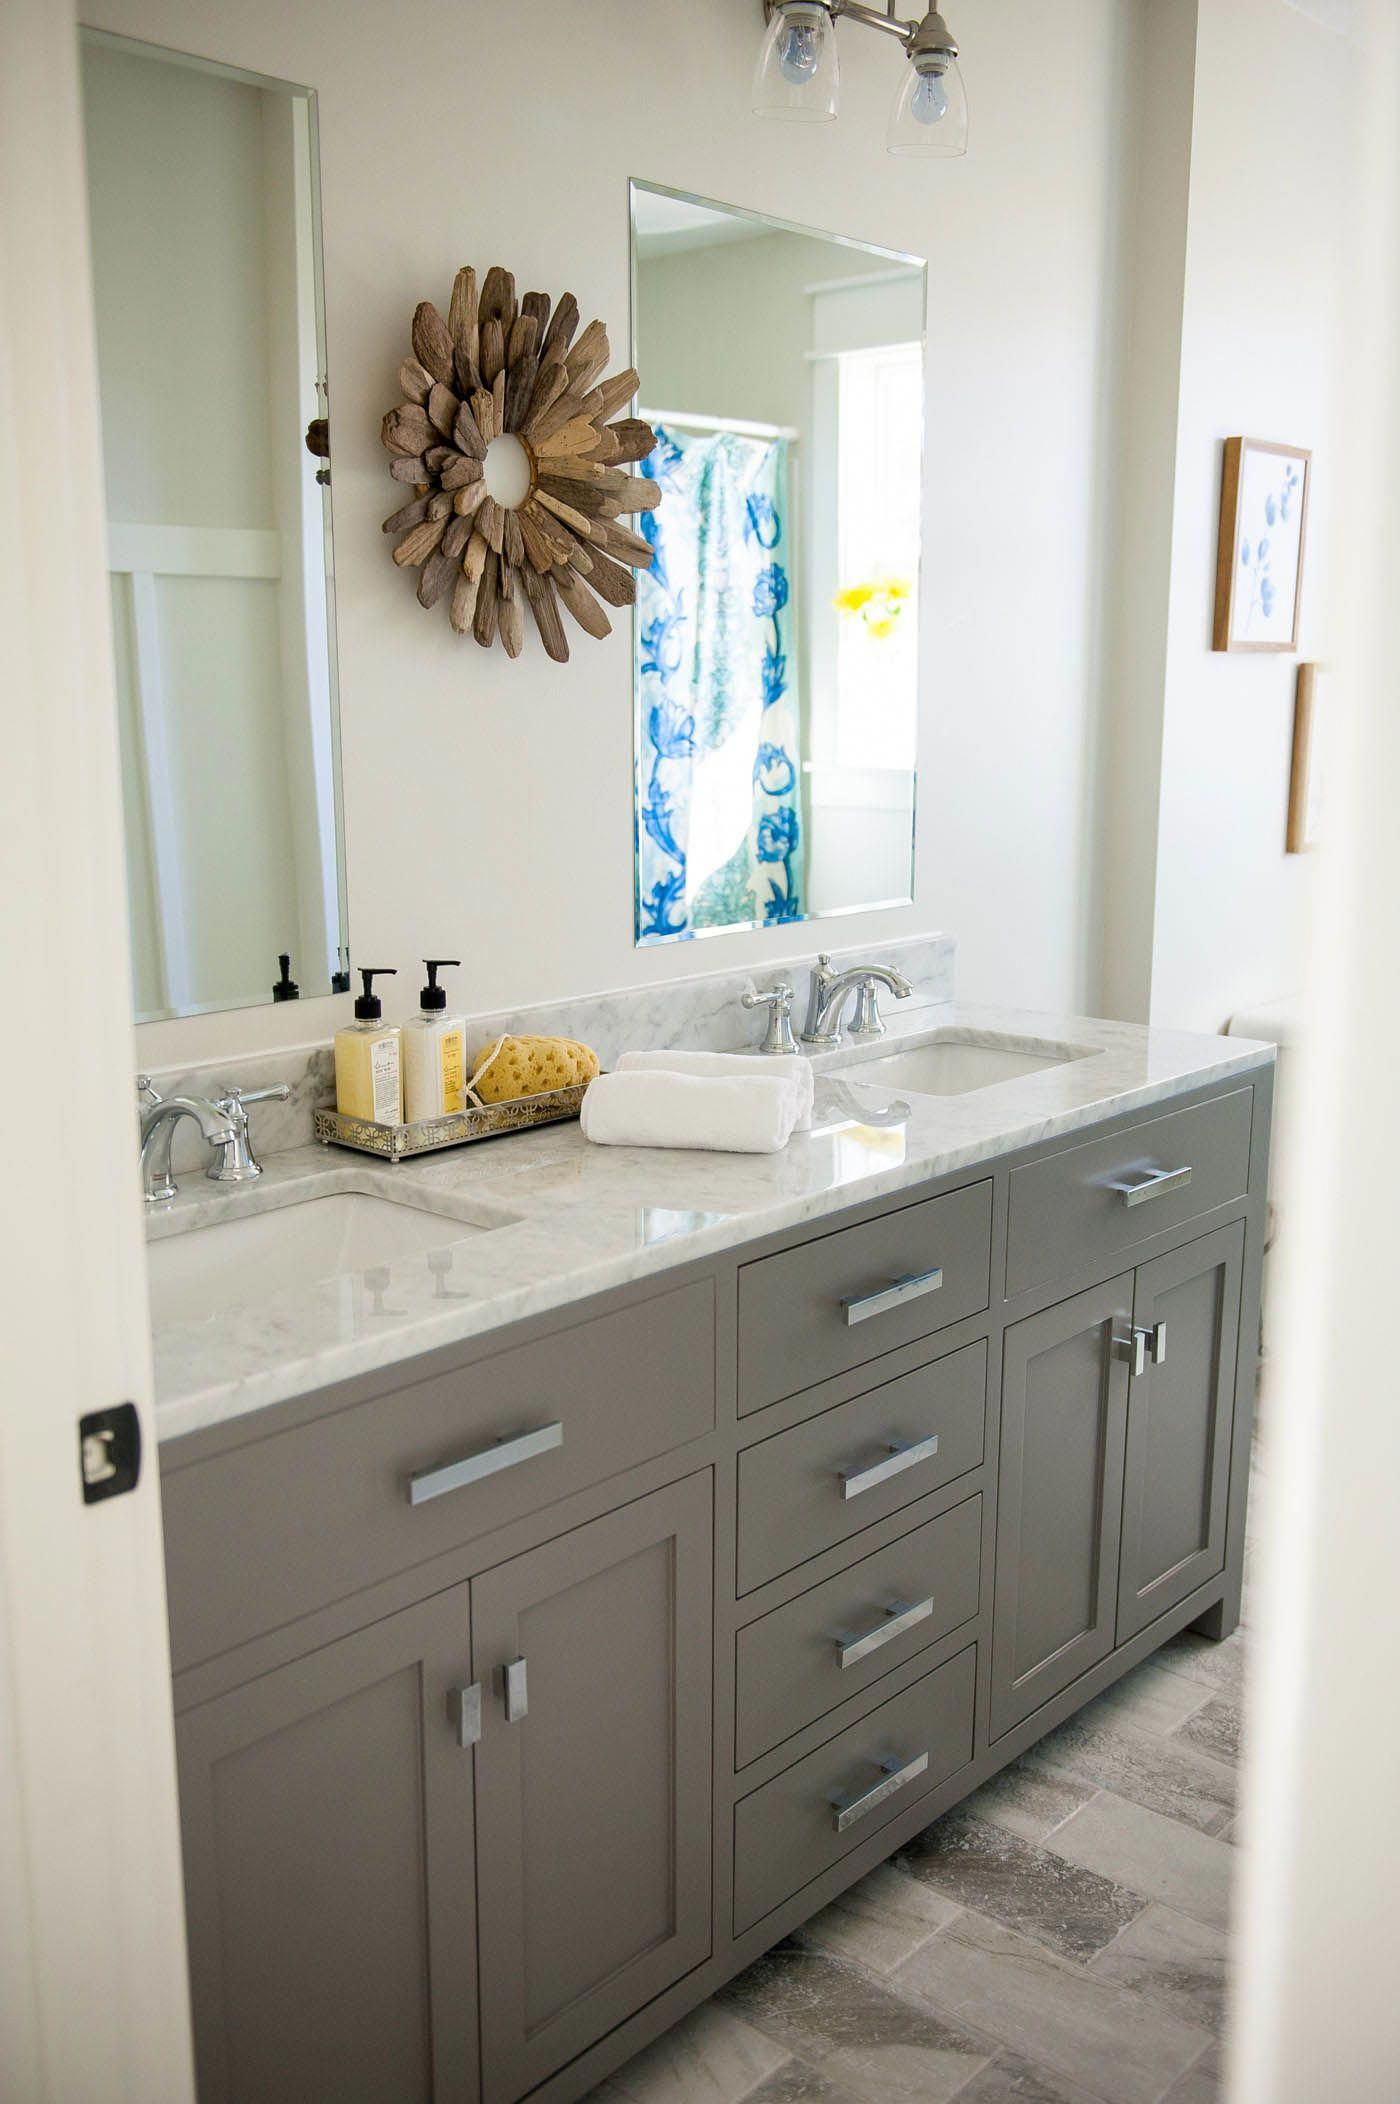 The Ultimate Guide To Buying A Bathroom Vanity With Images Double Vanity Bathroom Grey Bathroom Vanity Master Bathroom Vanity